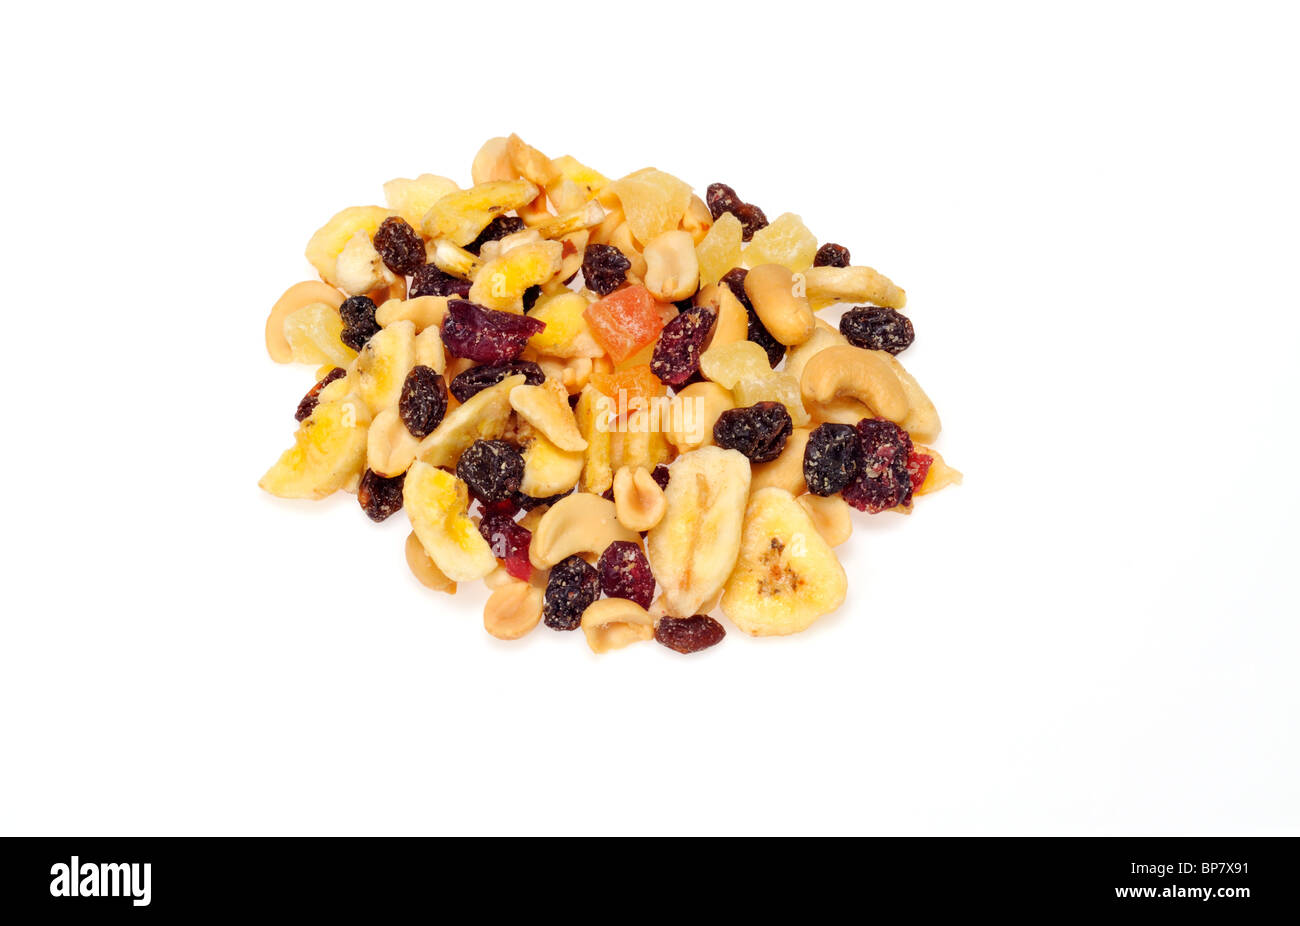 Handful of trail mix snack  isolated on white background cutout. - Stock Image